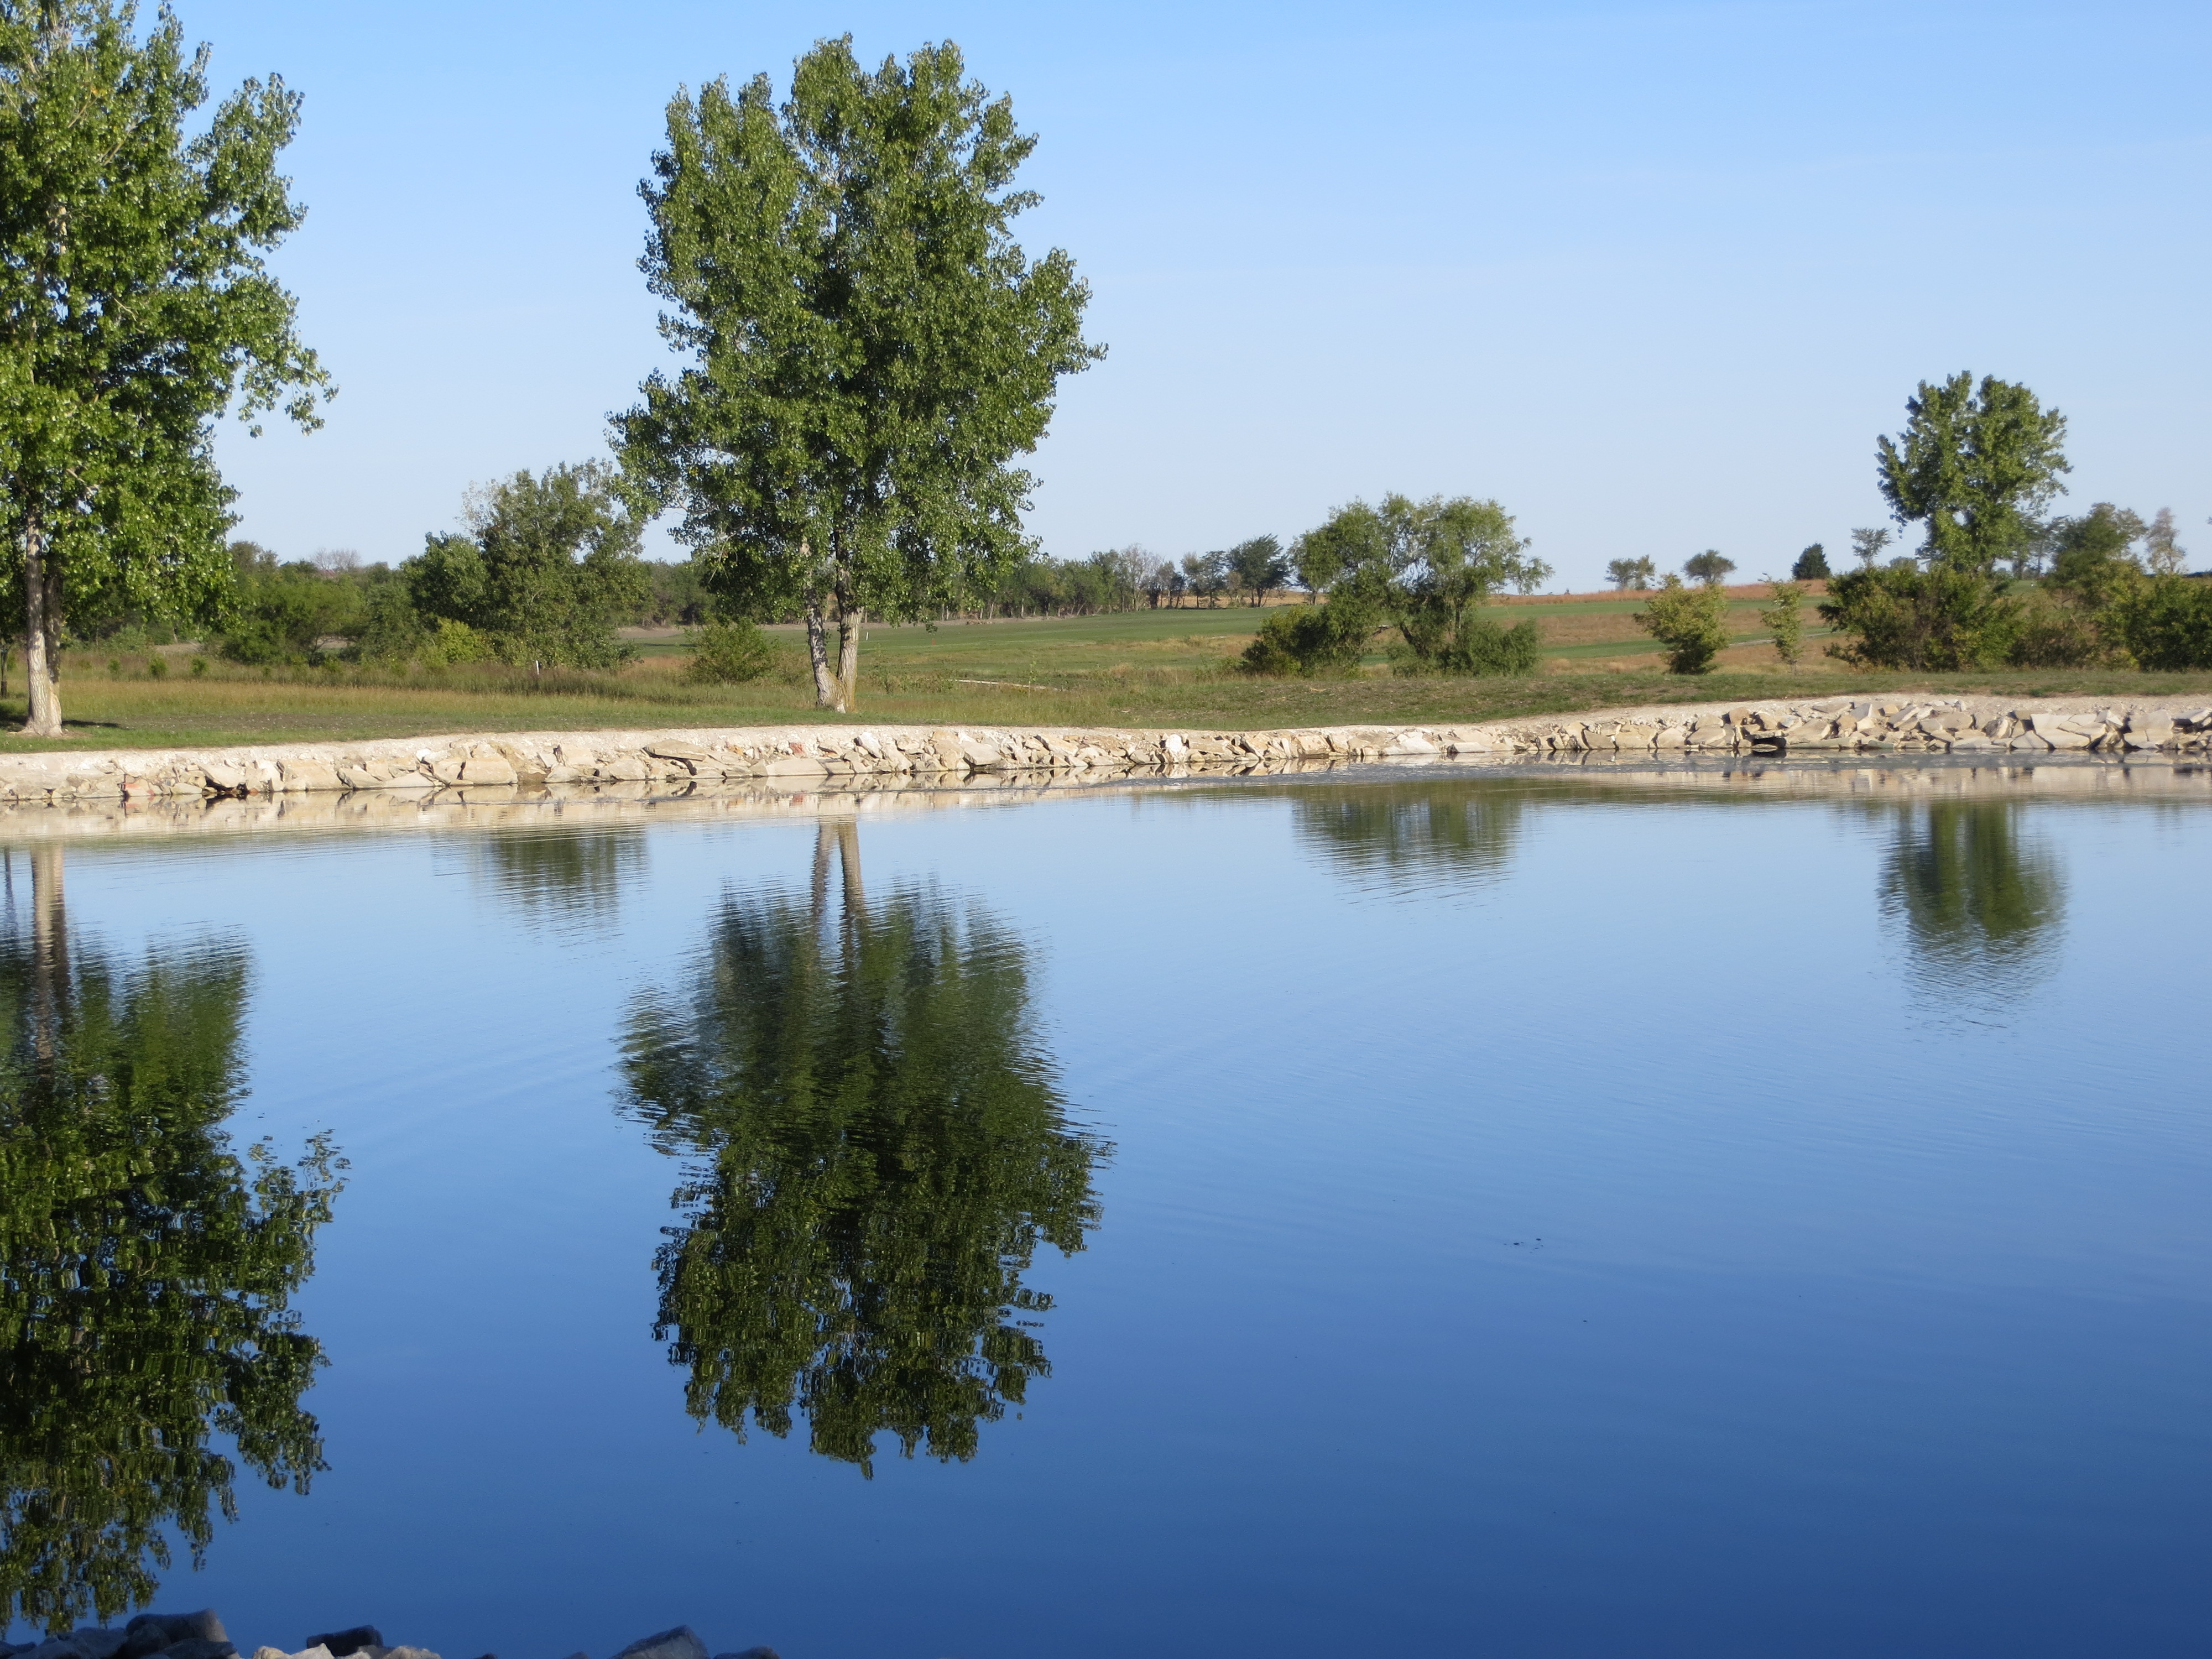 The Small Pond At Stallbaumer RV Park In Seneca Kansas Where Pepper And I Spent A Quiet Night Photo By Pat Bean